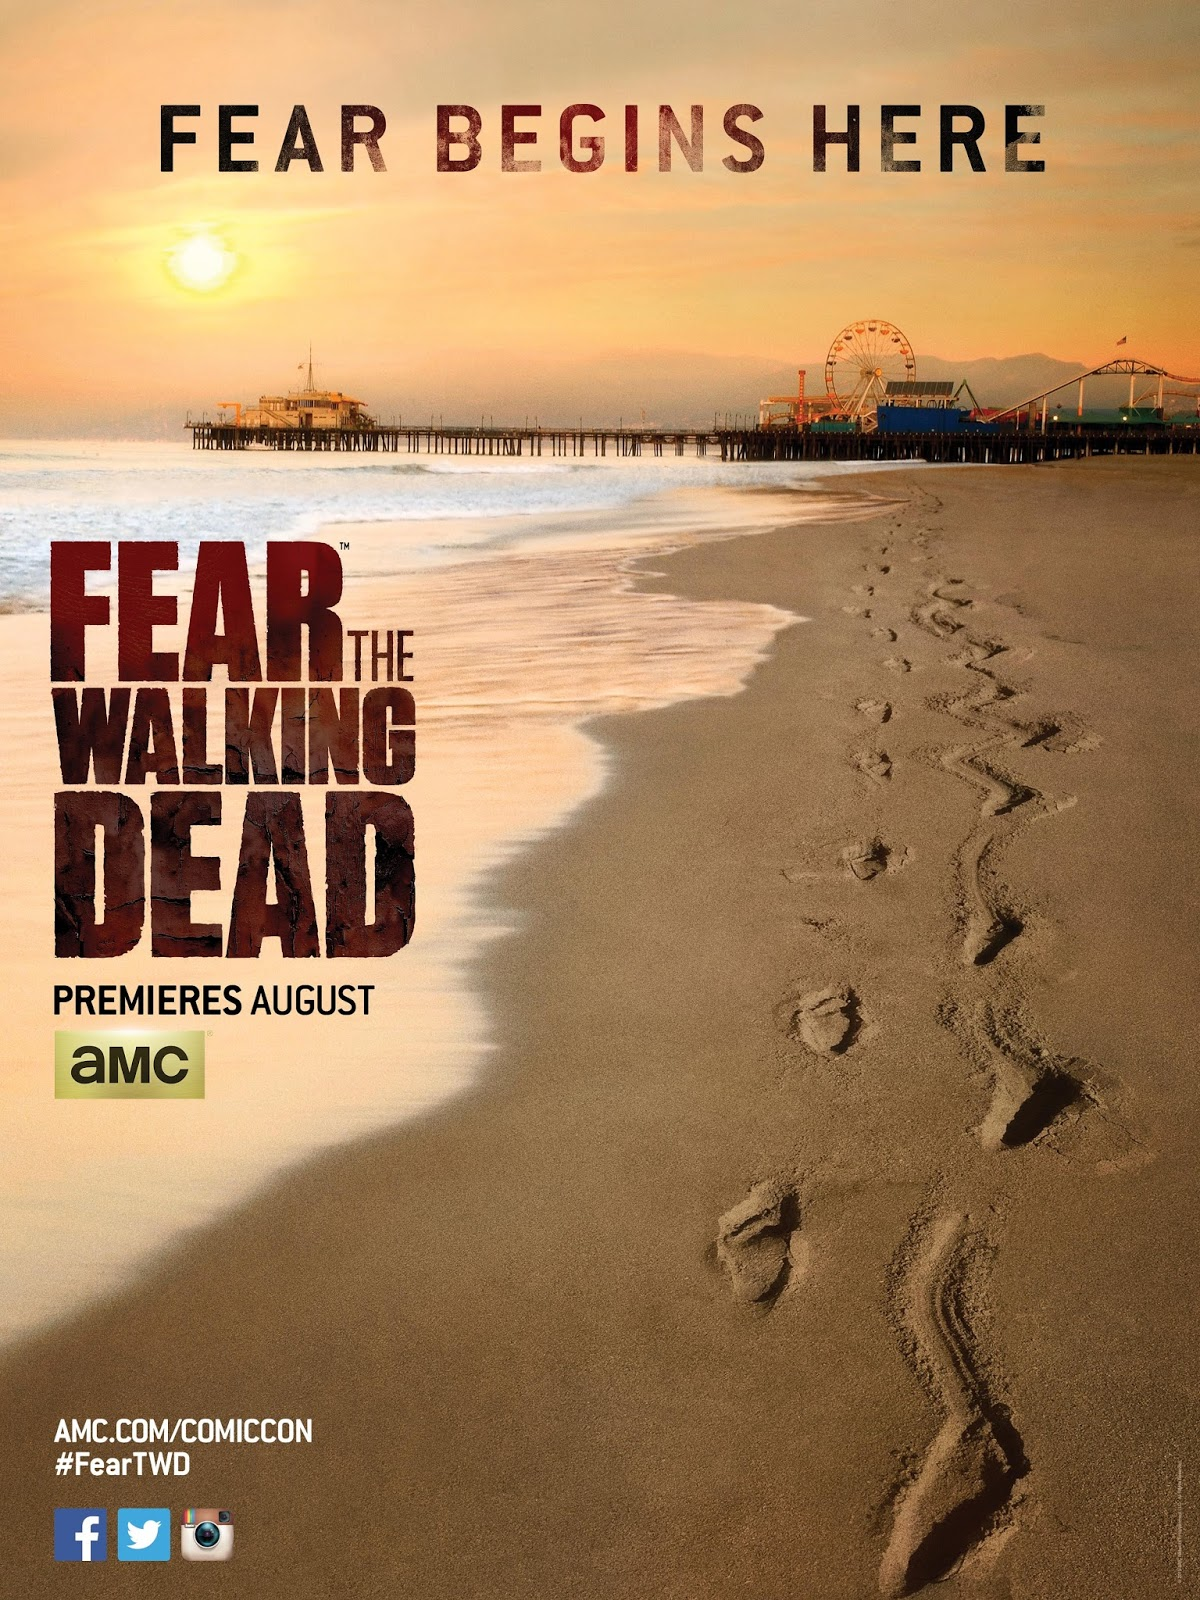 The Fear Walking Dead Stream